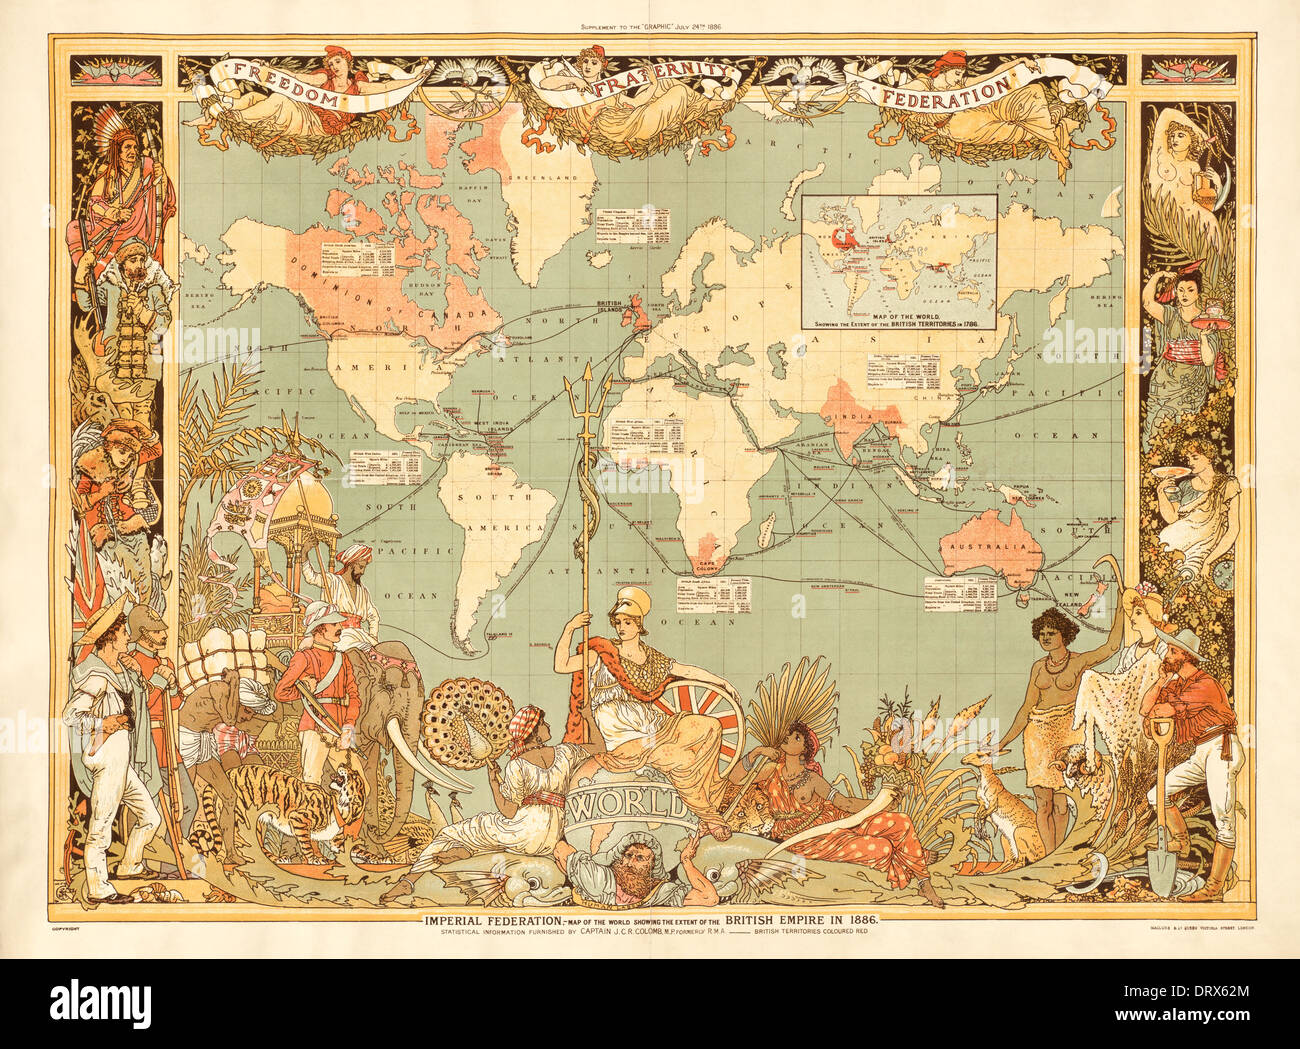 Map showing the extent of the British Empire in 1886, distributed as a supplement to The Graphic weekly newspaper 24 July 1886 - Stock Image